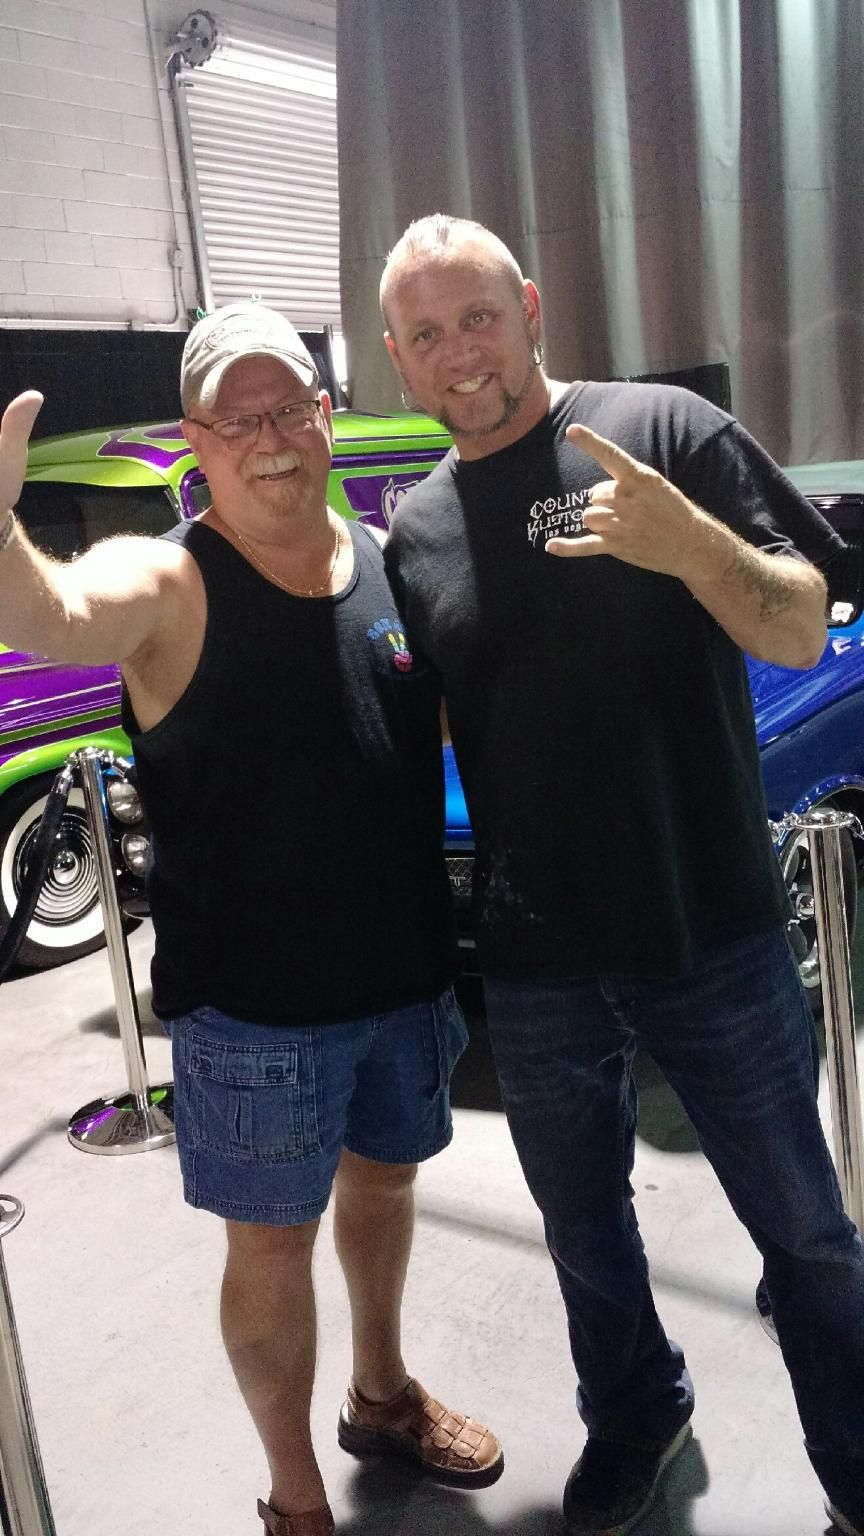 Kenny got to meet Horny Mike at Counting Cars Counts